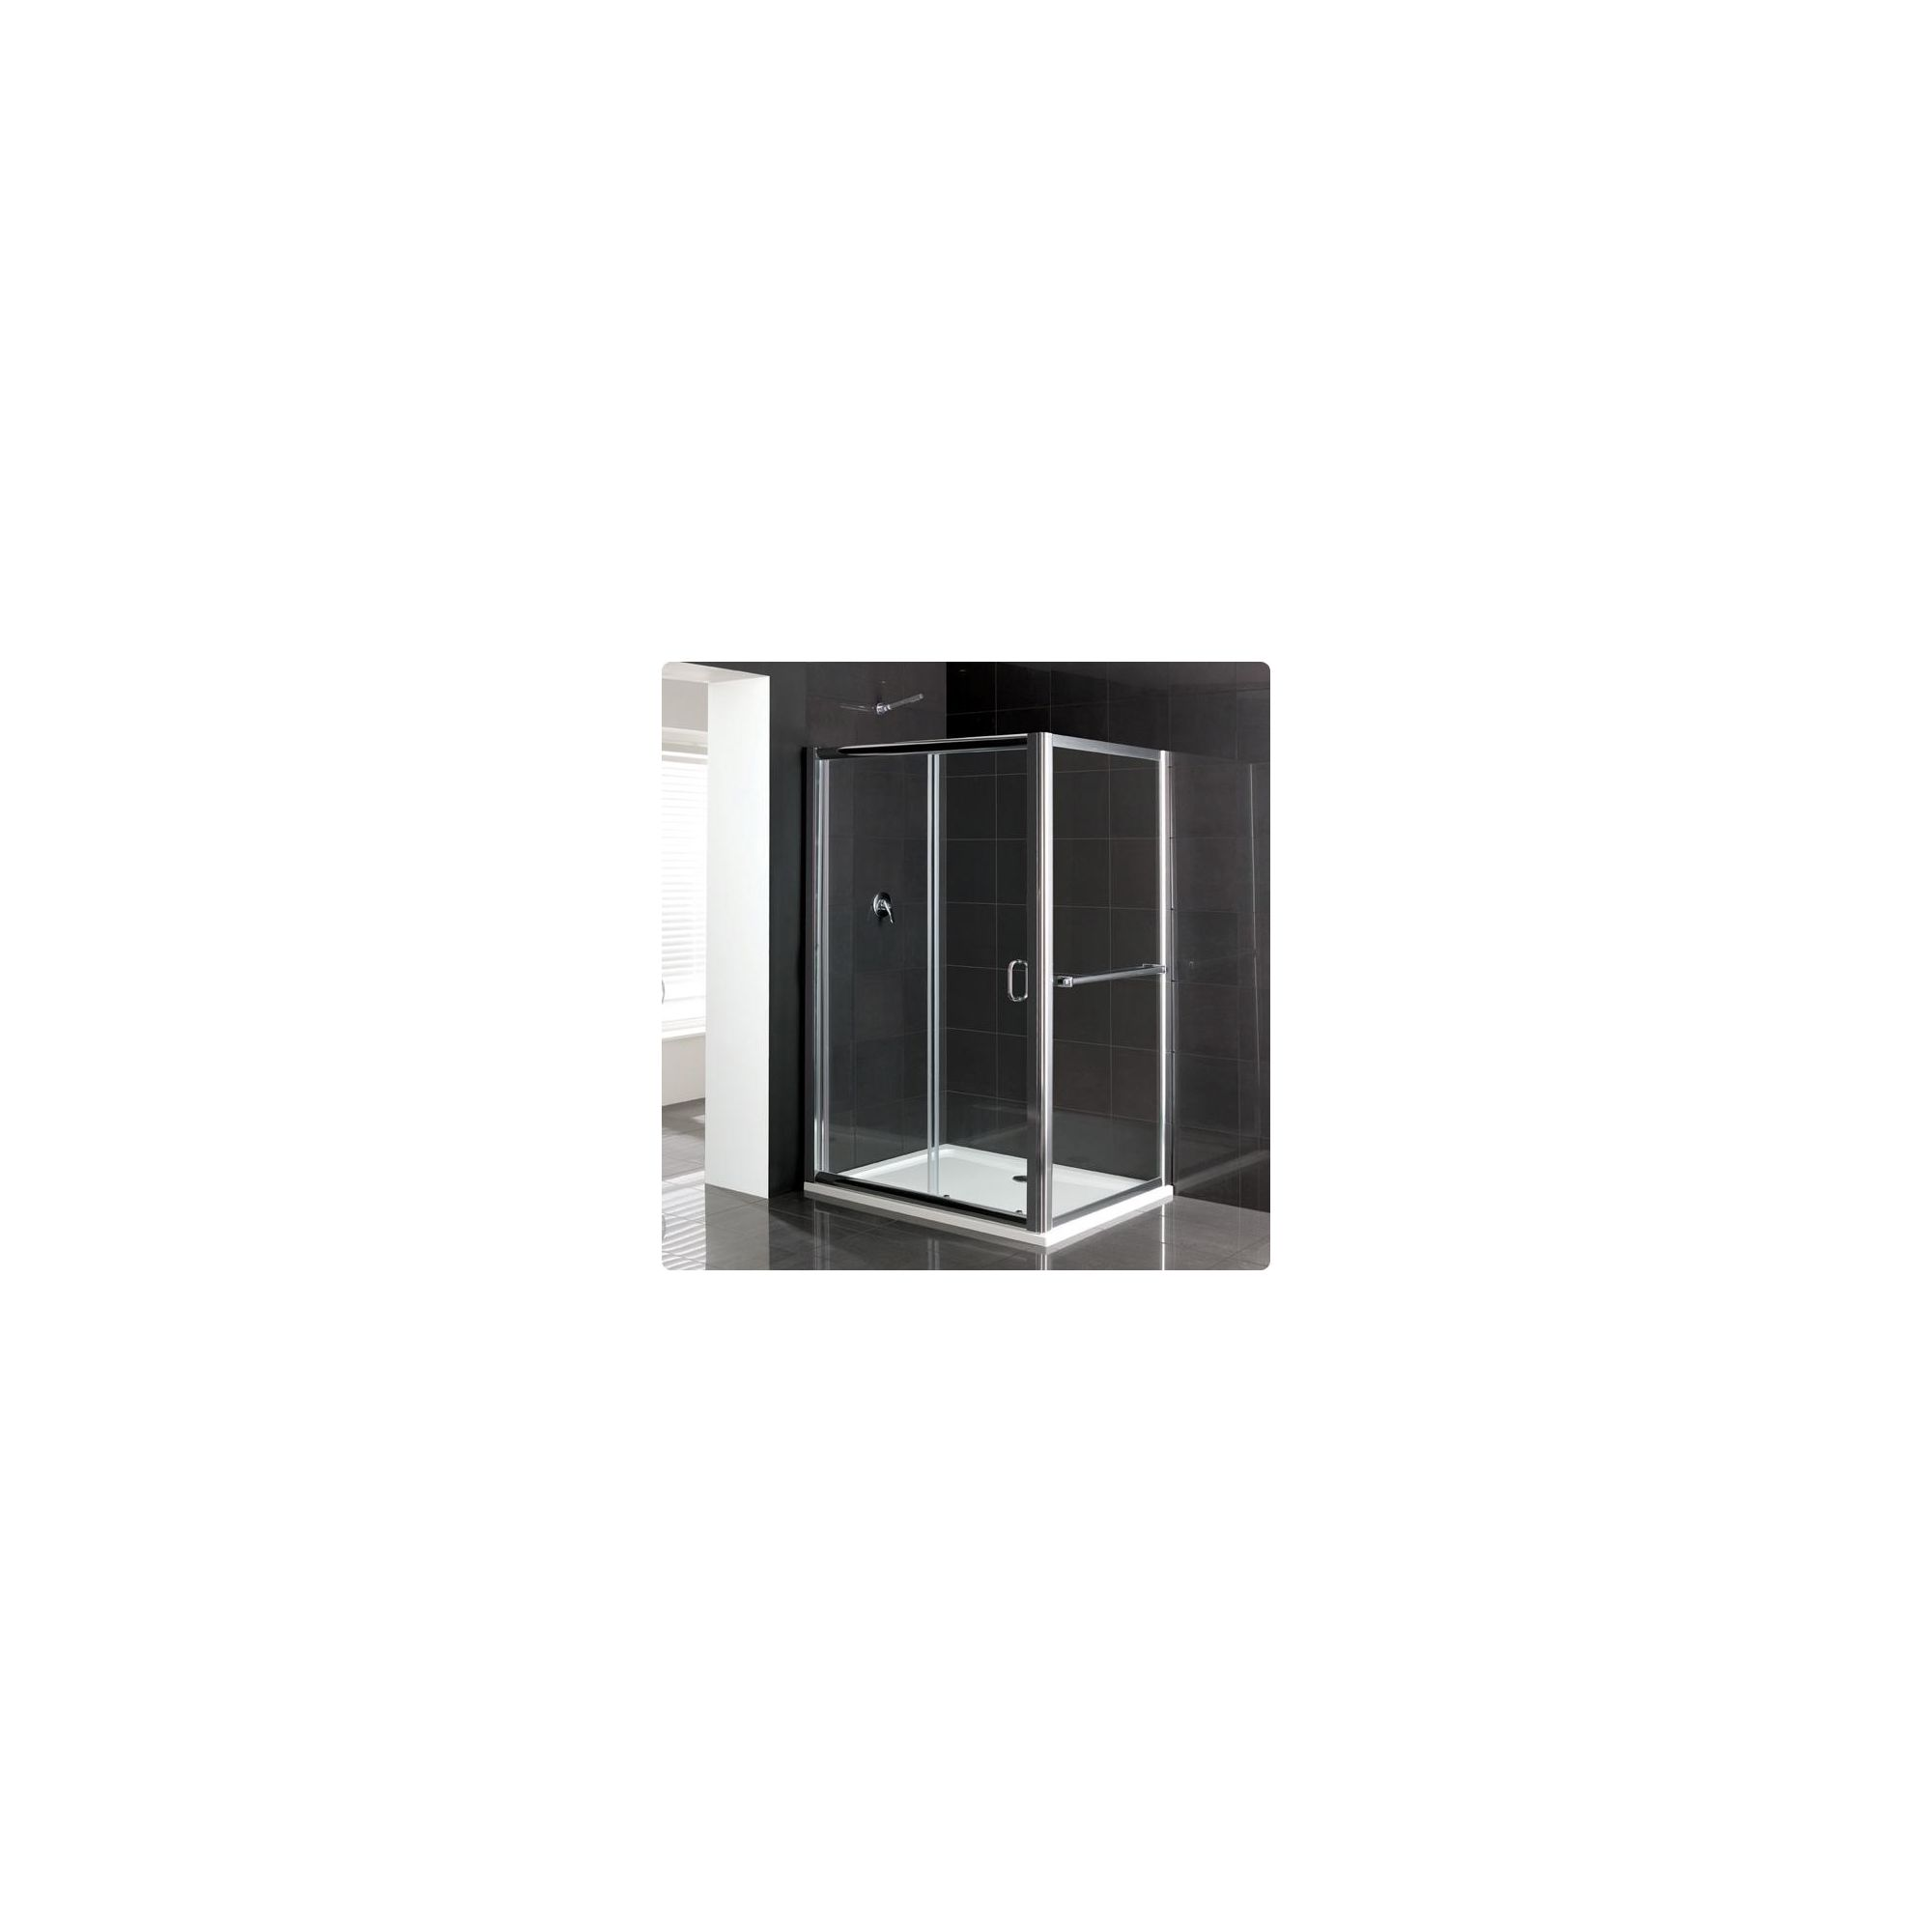 Duchy Elite Silver Sliding Door Shower Enclosure with Towel Rail, 1100mm x 800mm, Standard Tray, 6mm Glass at Tesco Direct